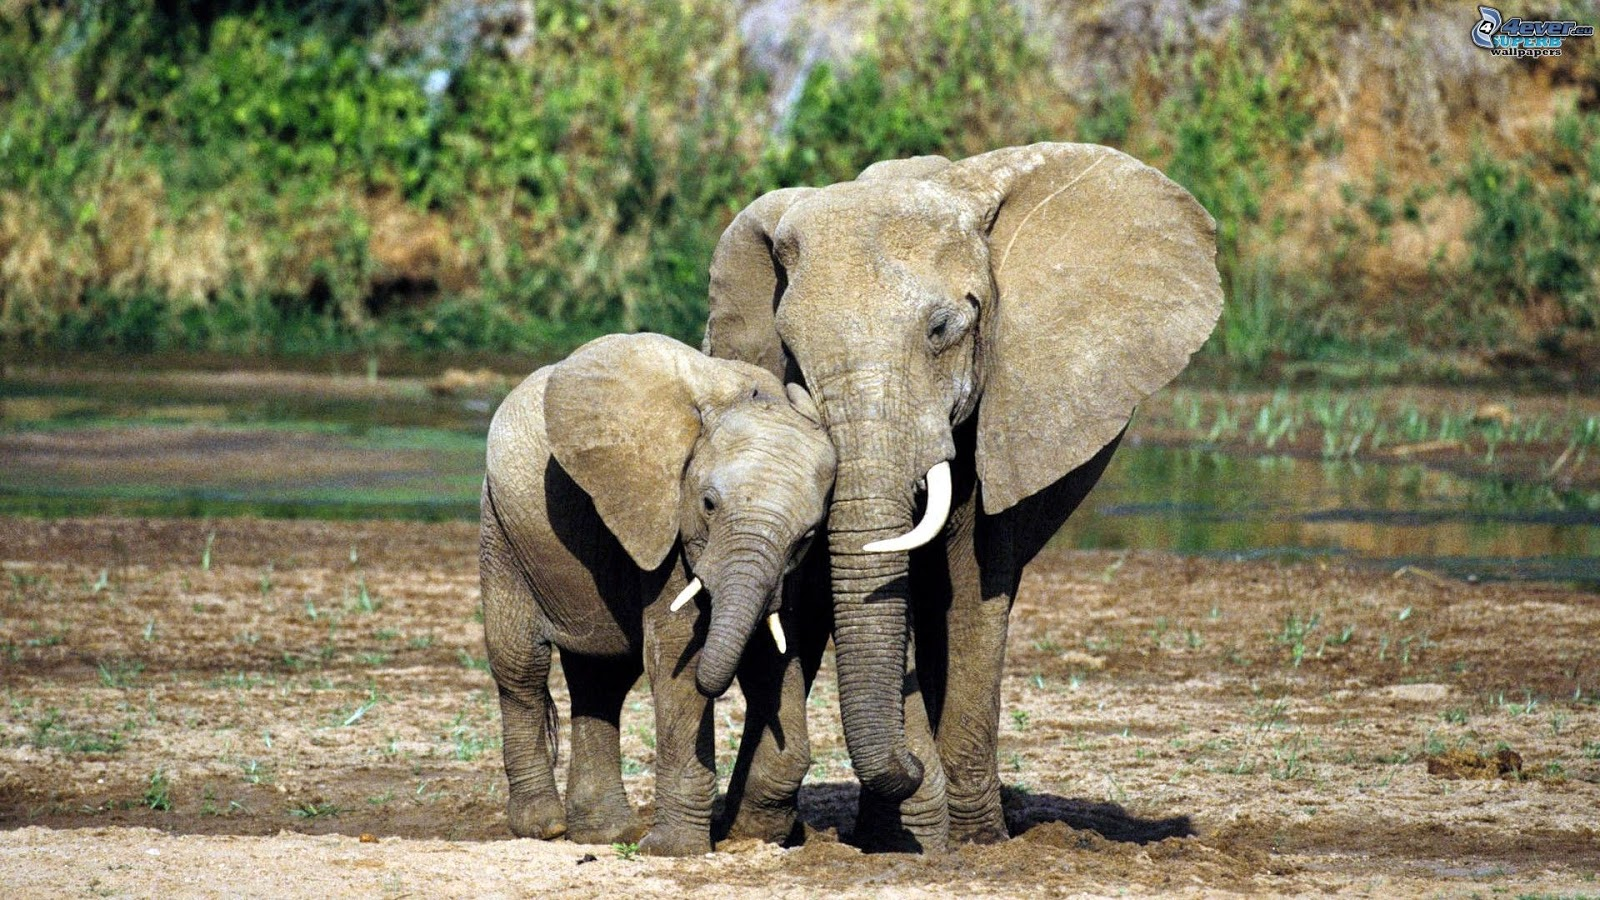 SAVE THE LAST ELEPHANTS, WE'RE RUNNING OUT OF TIME IVORY TRAFFICKING IN CAMEROON